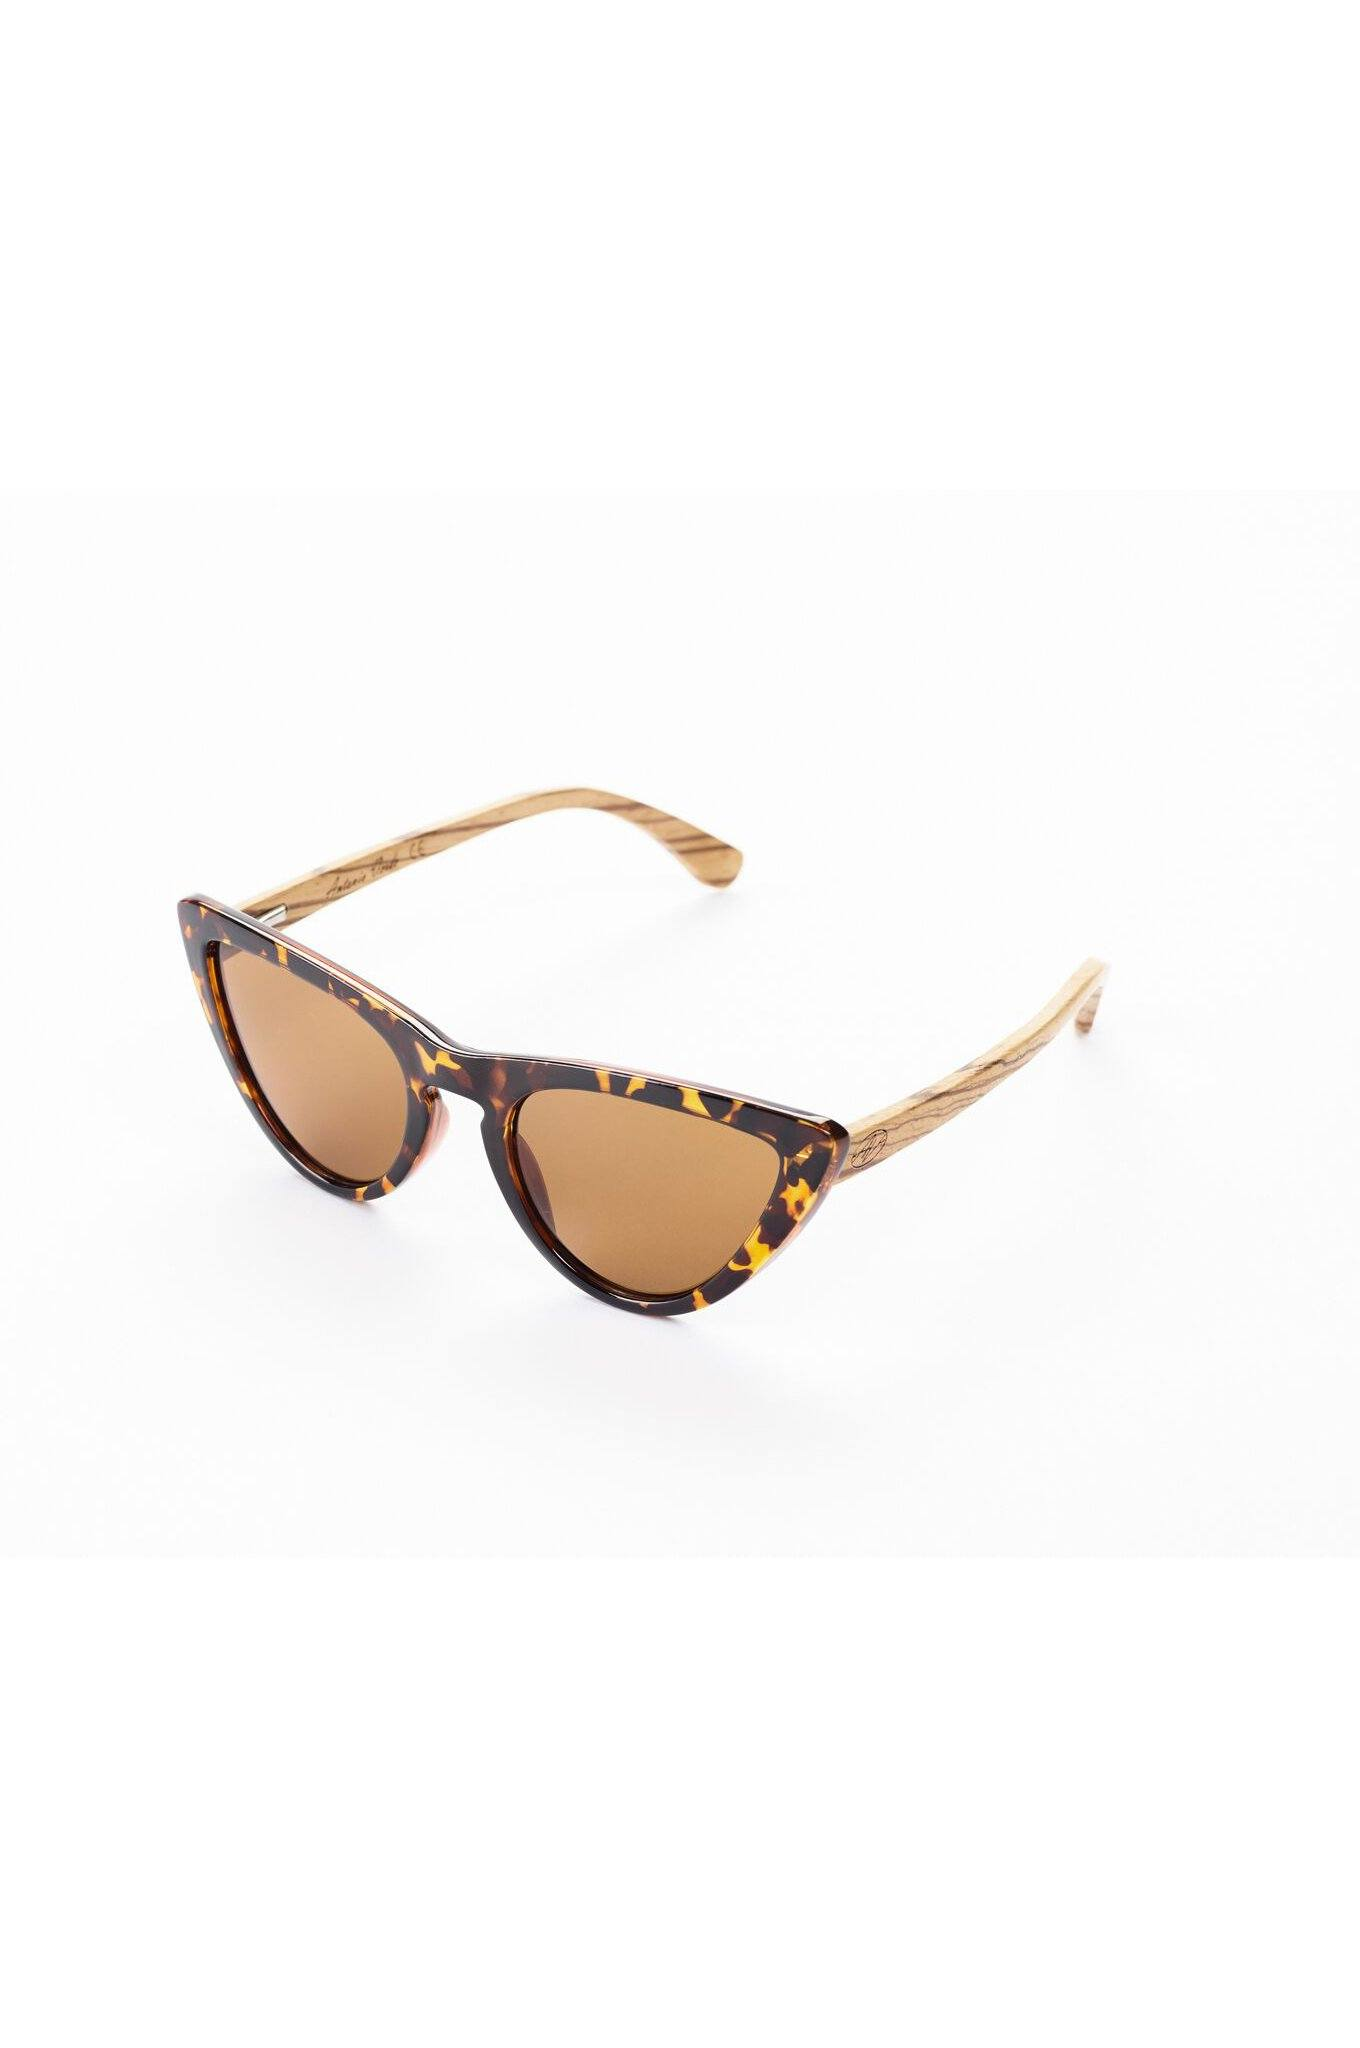 Sustainable & Vegan Bamboo Sunglasses Panther Cat by Antonio Verde